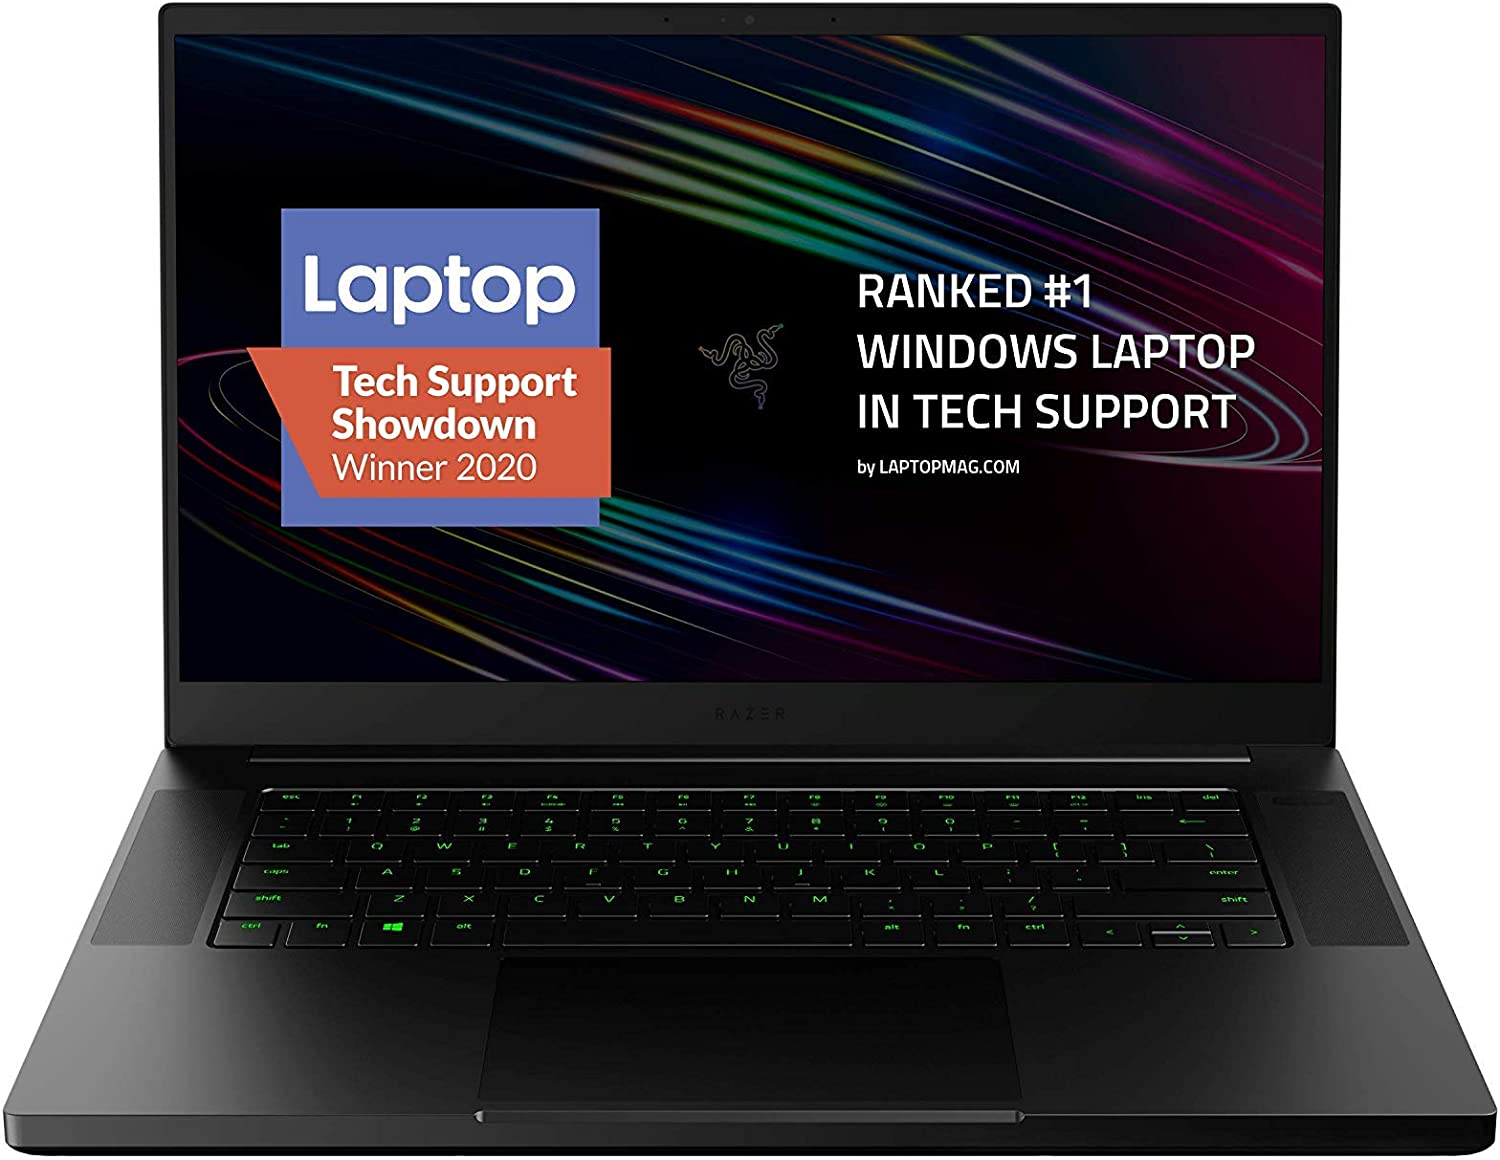 Razer Blade 15 Base Gaming Laptop 2020: Intel Core i7-10750H 6-Core, NVIDIA GeForce RTX 2060, 15.6